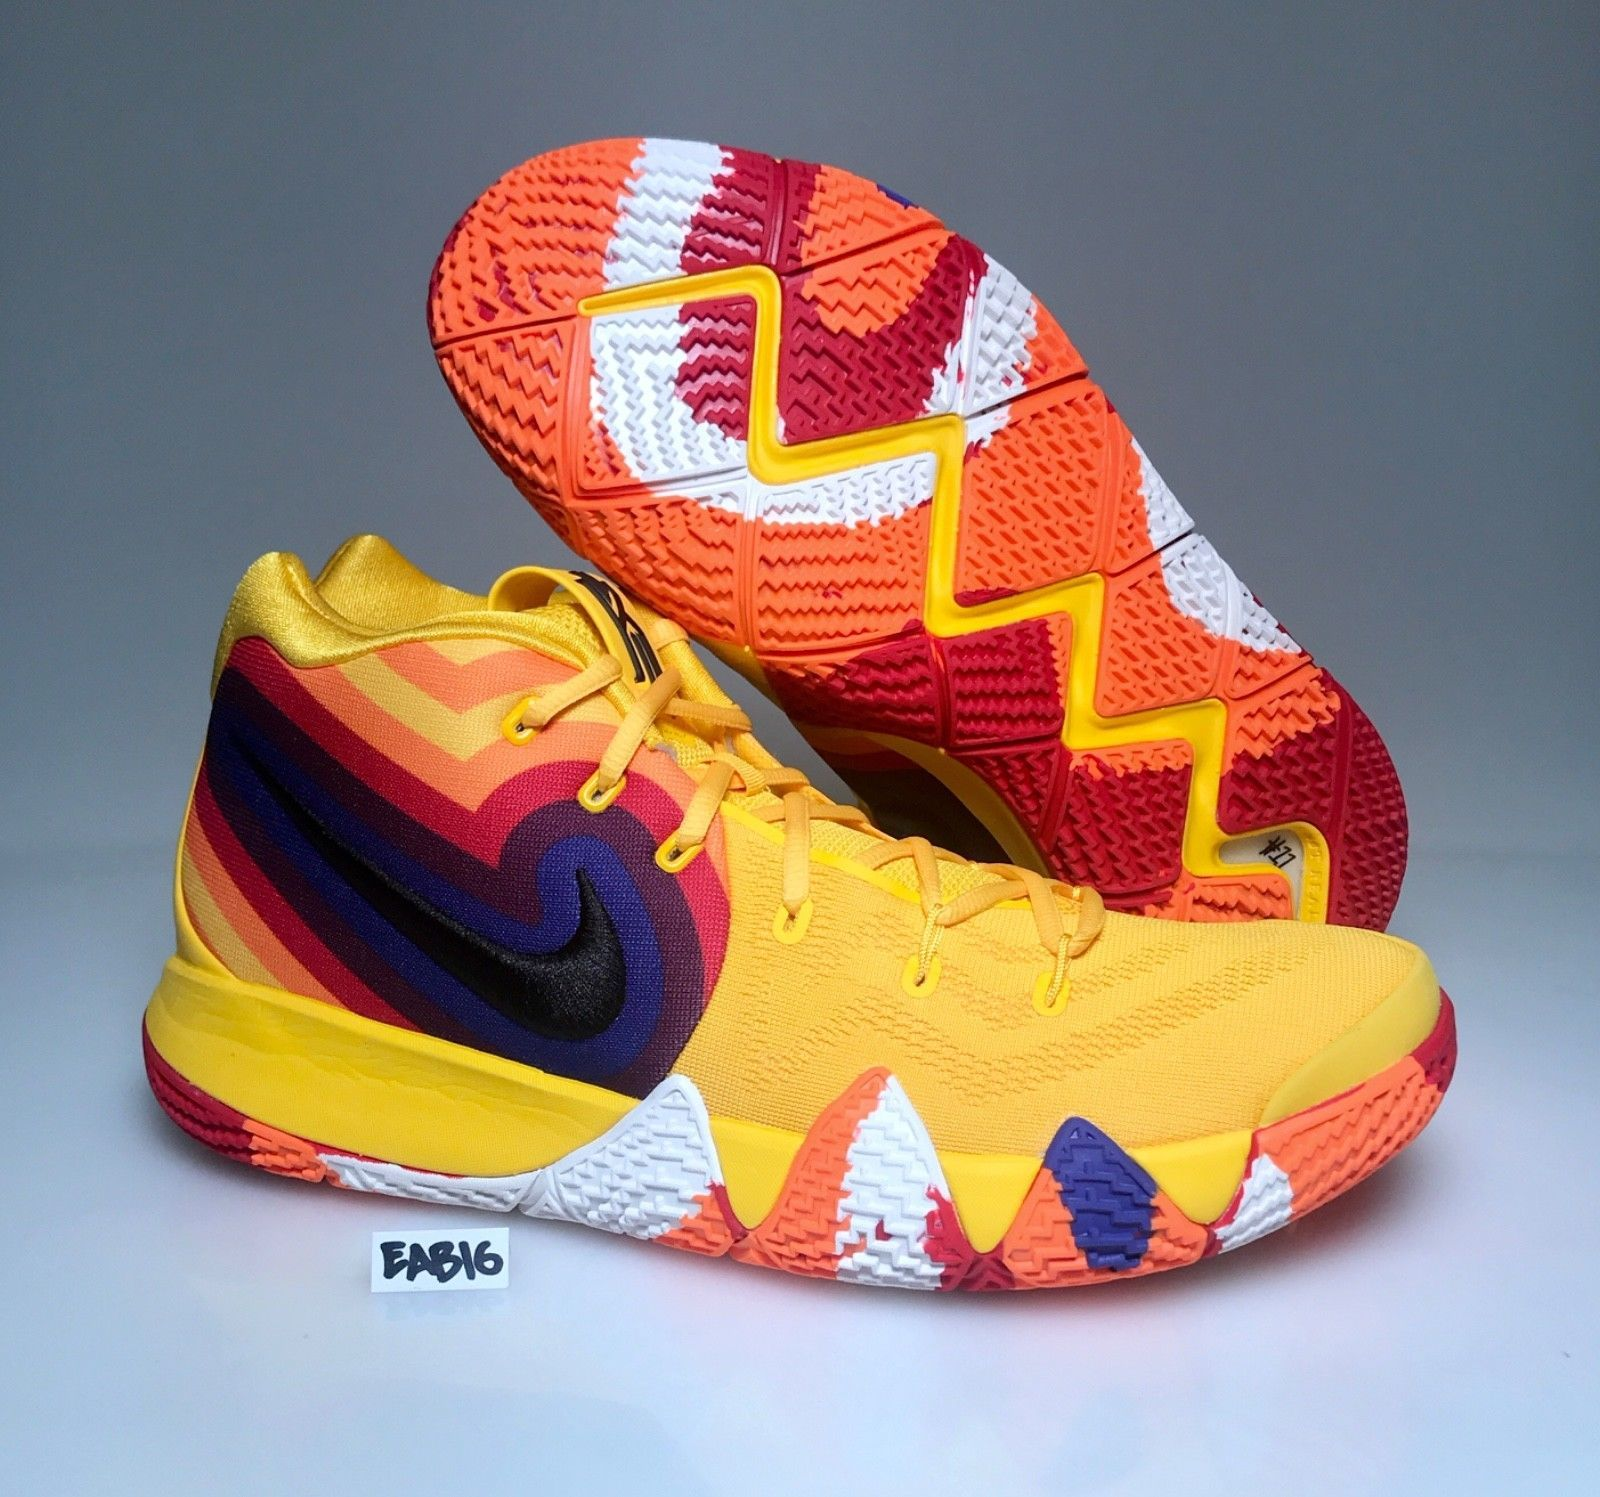 2f978642fe3 Nike Kyrie Irving 4 70s Yellow Orange Blue 943807-700 Mens   Kids GS Uncle  Drew